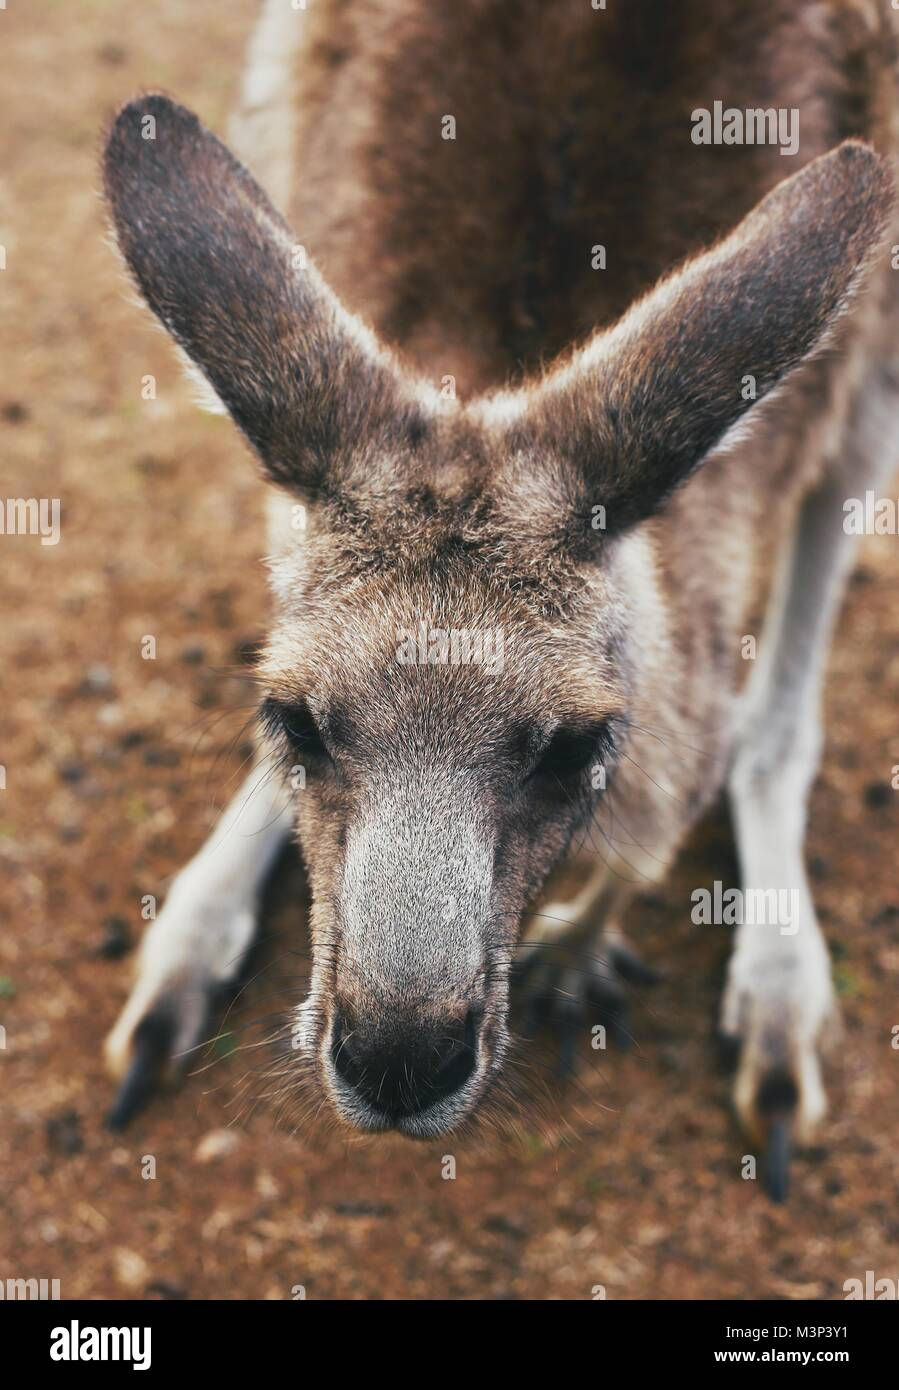 The nosy Kangaroos in Philip Island Wild Life Park. A lovely and happy bunch! - Stock Image